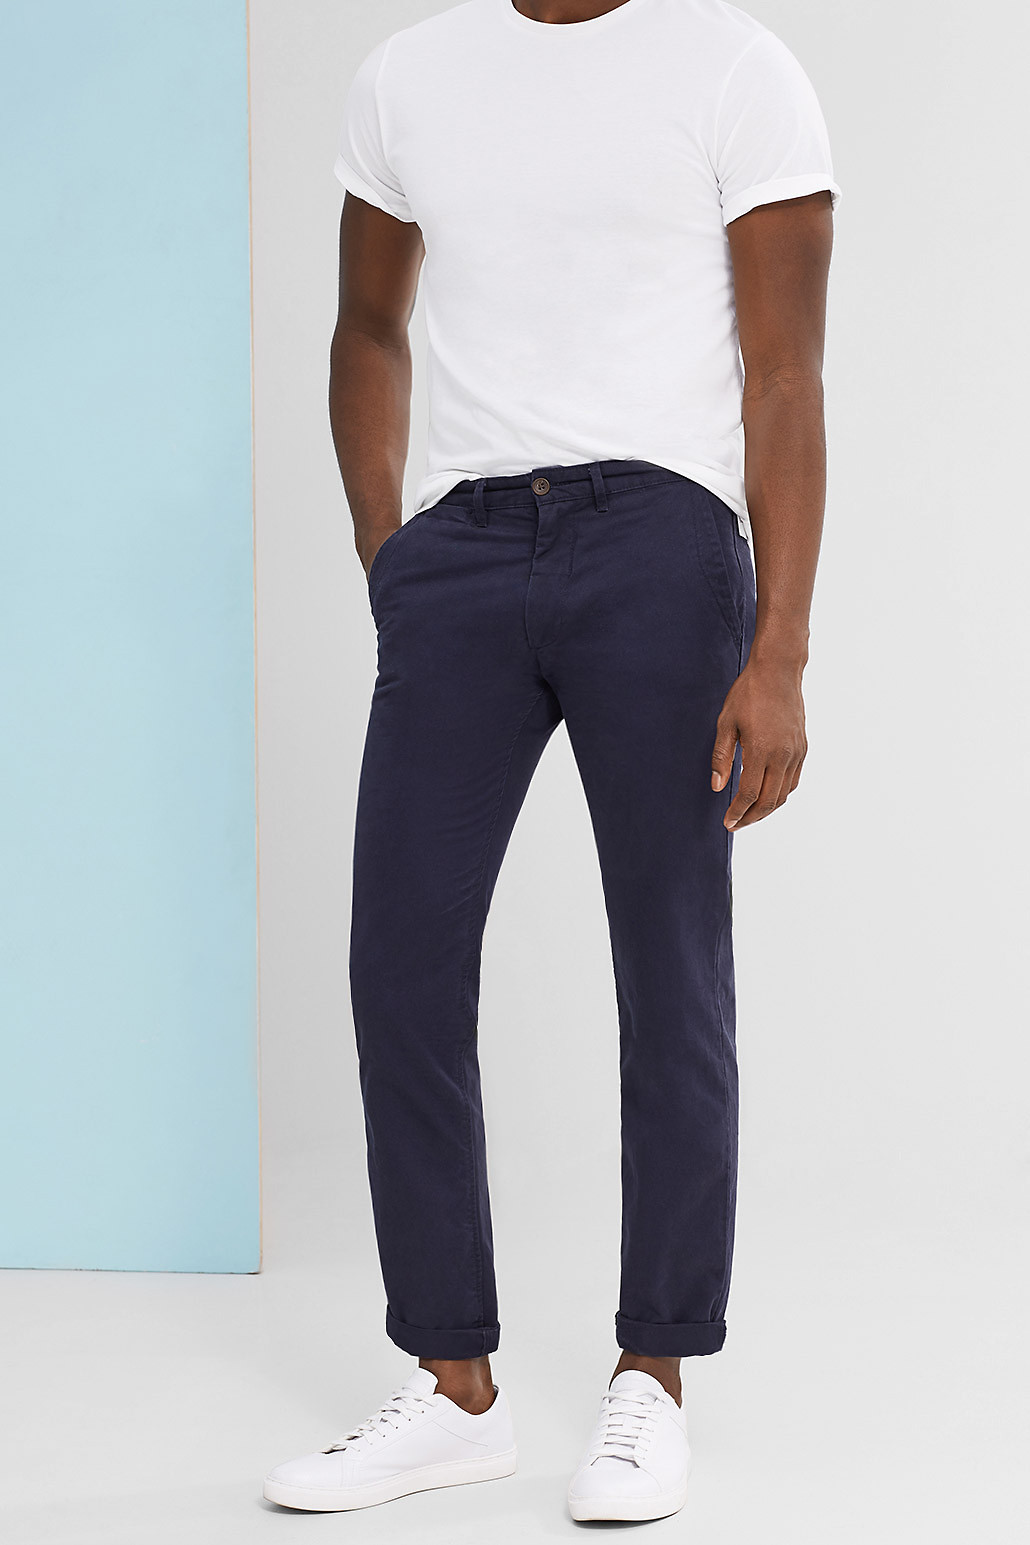 Esprit Straight Fit Navy Chino